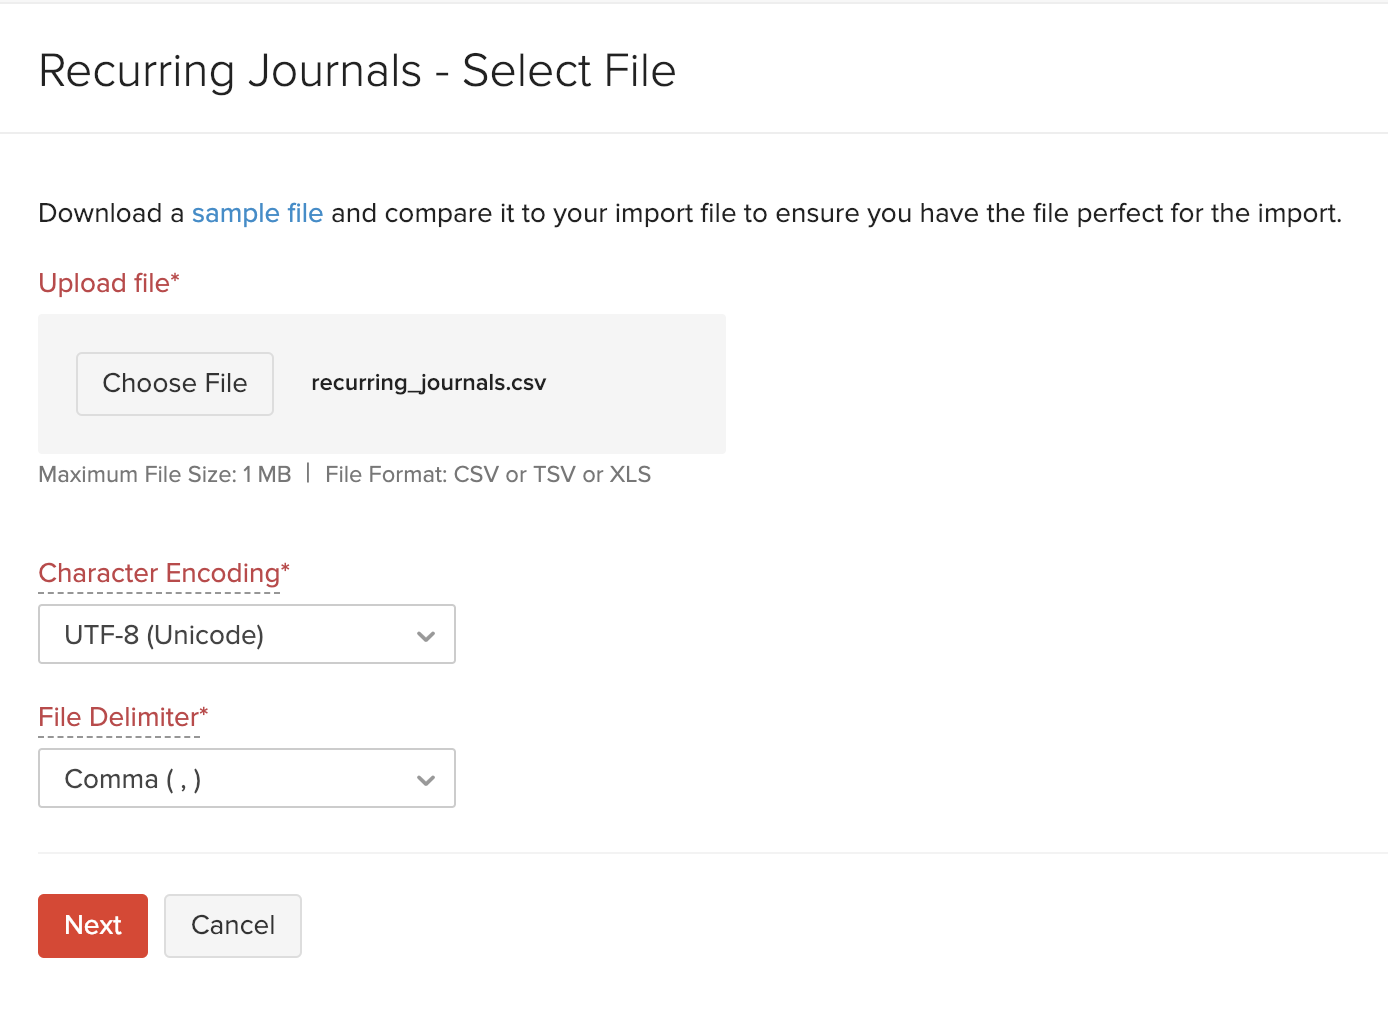 Import Recurring Journals - Choose File